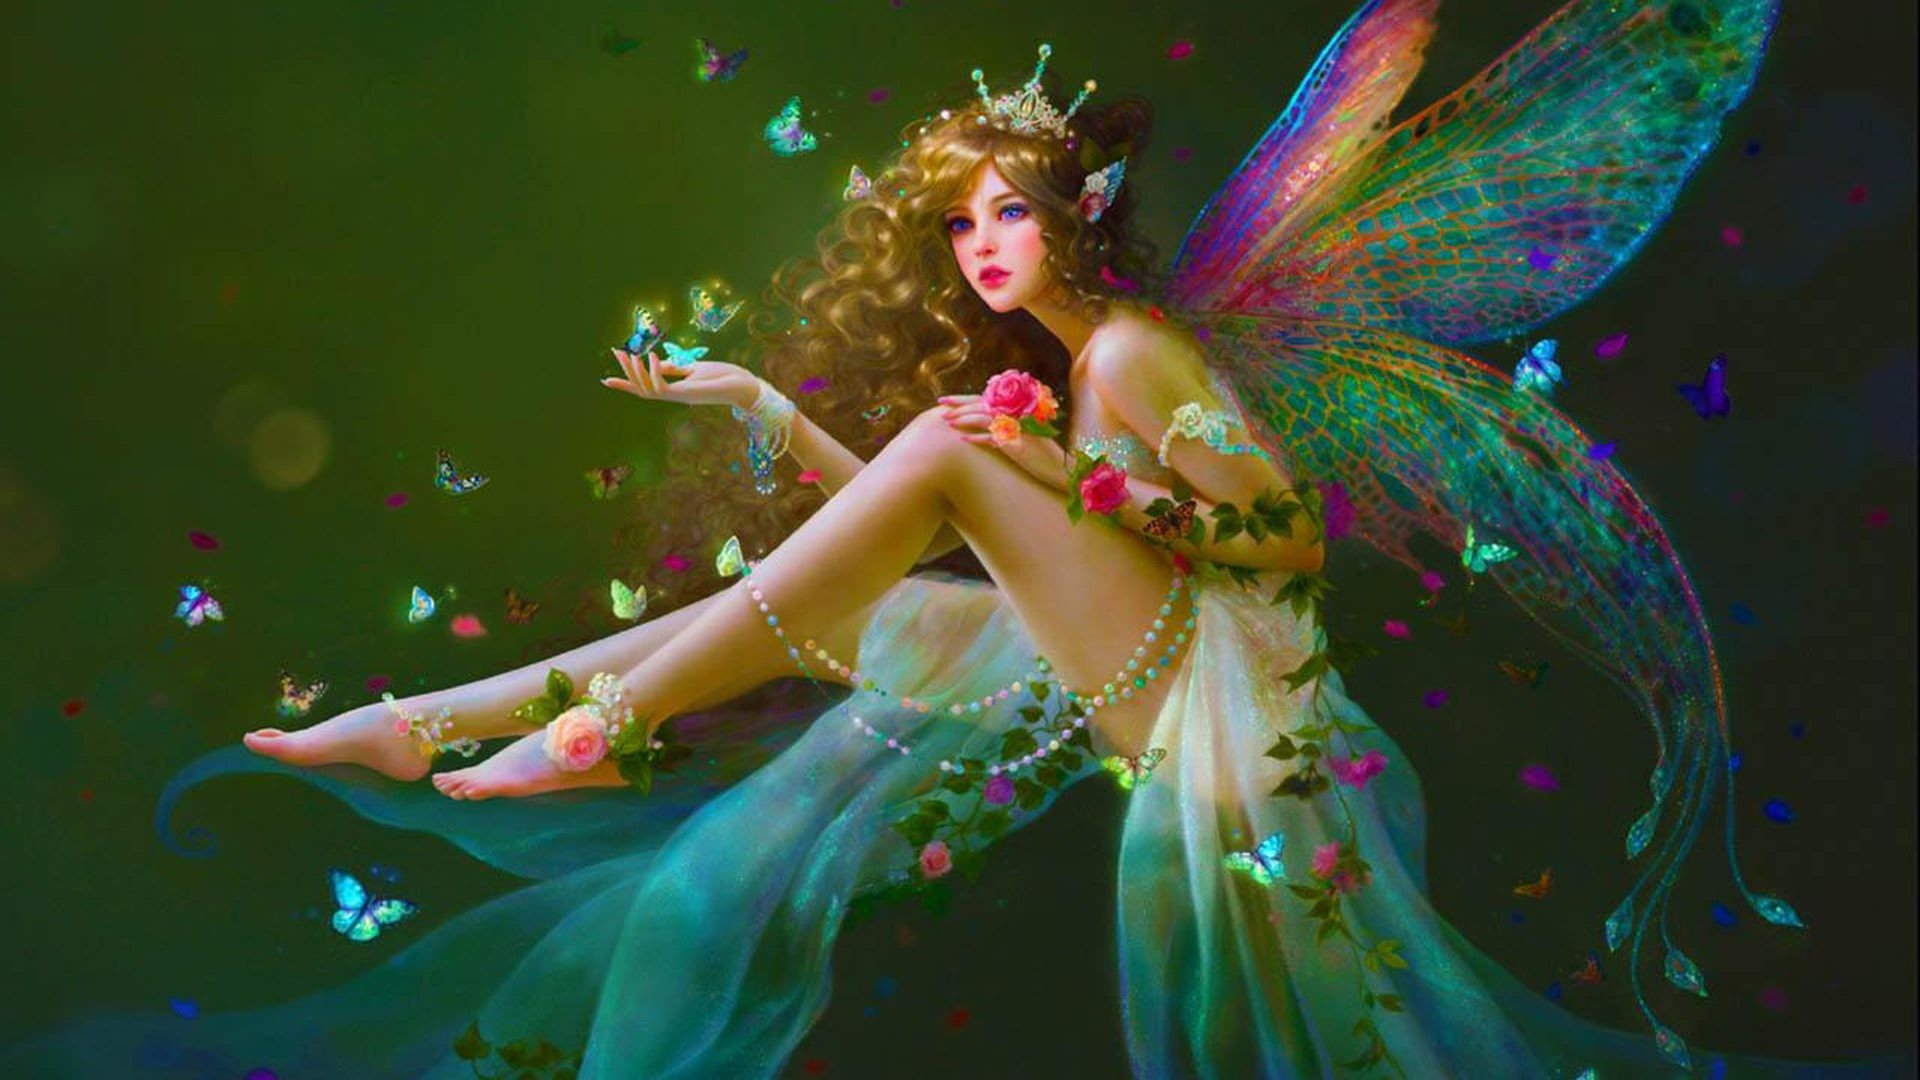 Res: 1920x1080, Fairy High Definition Wallpaper Backgrounds Full Hd Pics Of Androids  Fantasy Desktop